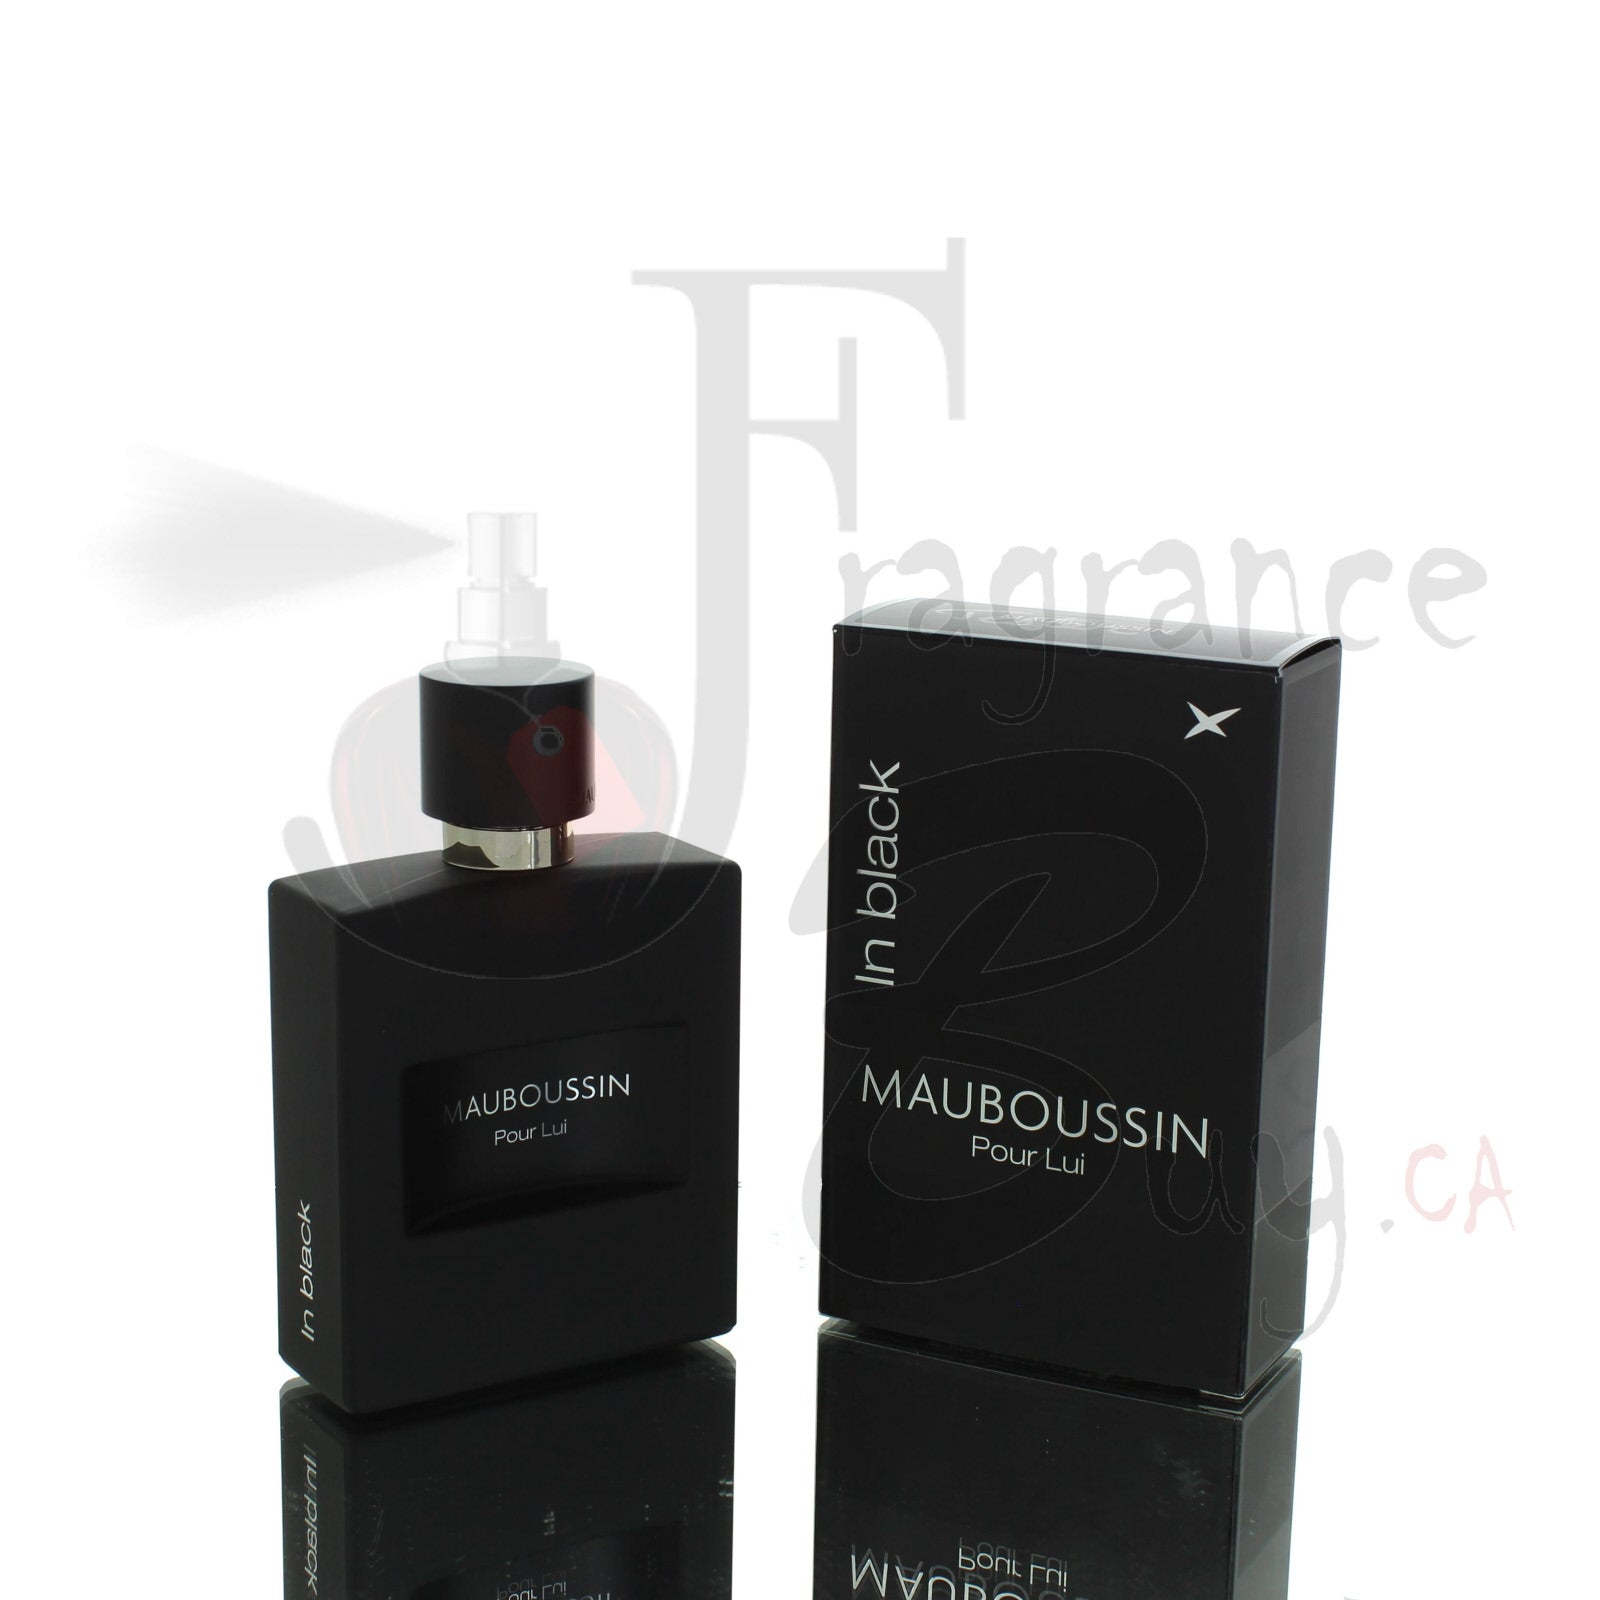 Mauboussin Pour Lui in Black For Man